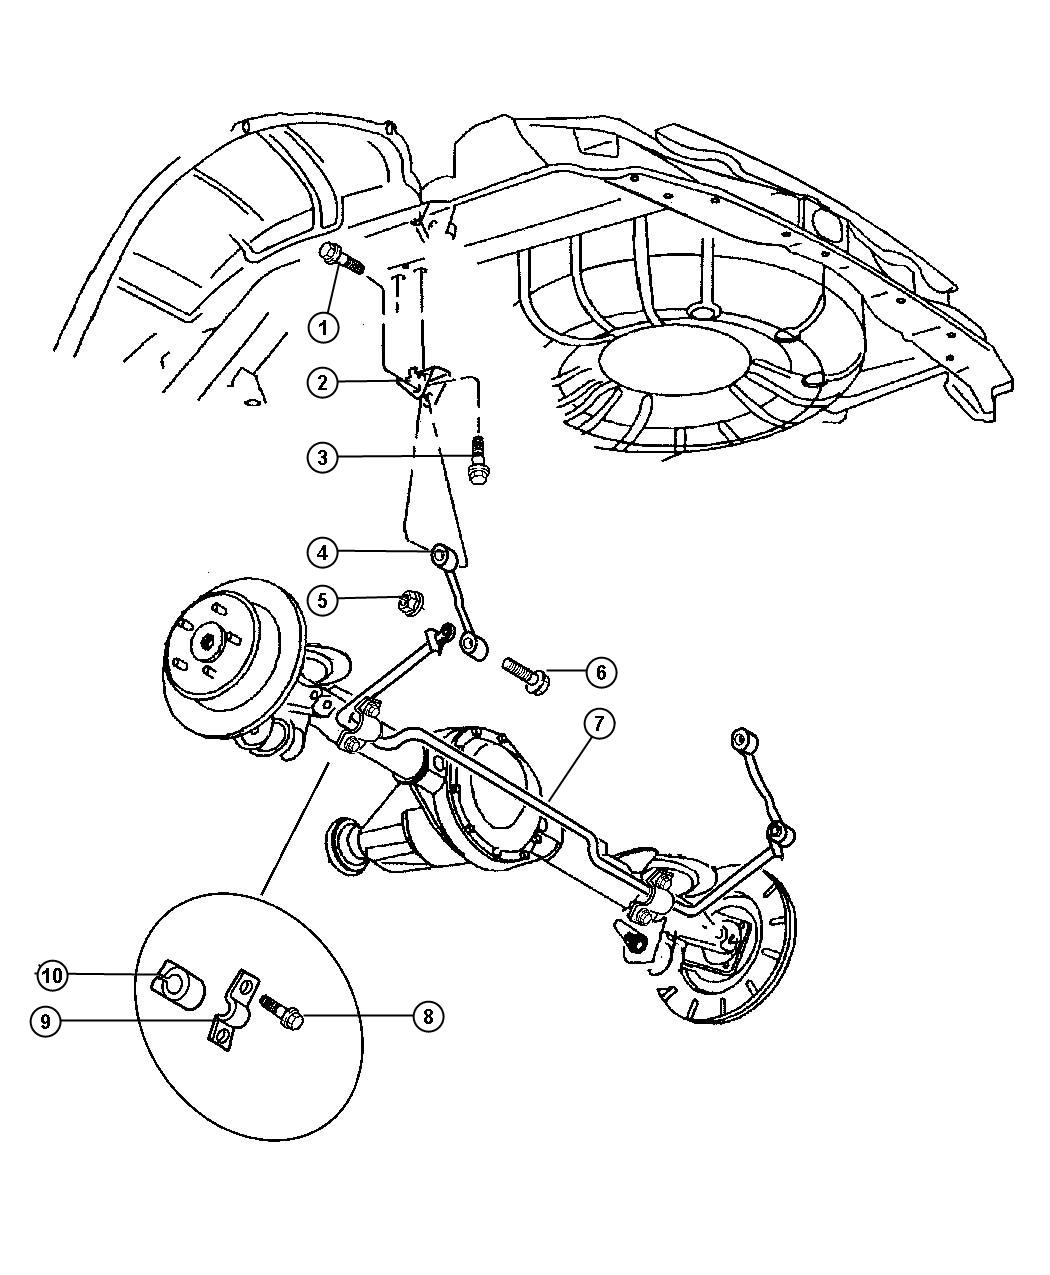 Jeep Grand Cherokee Bracket Mounting Suspension